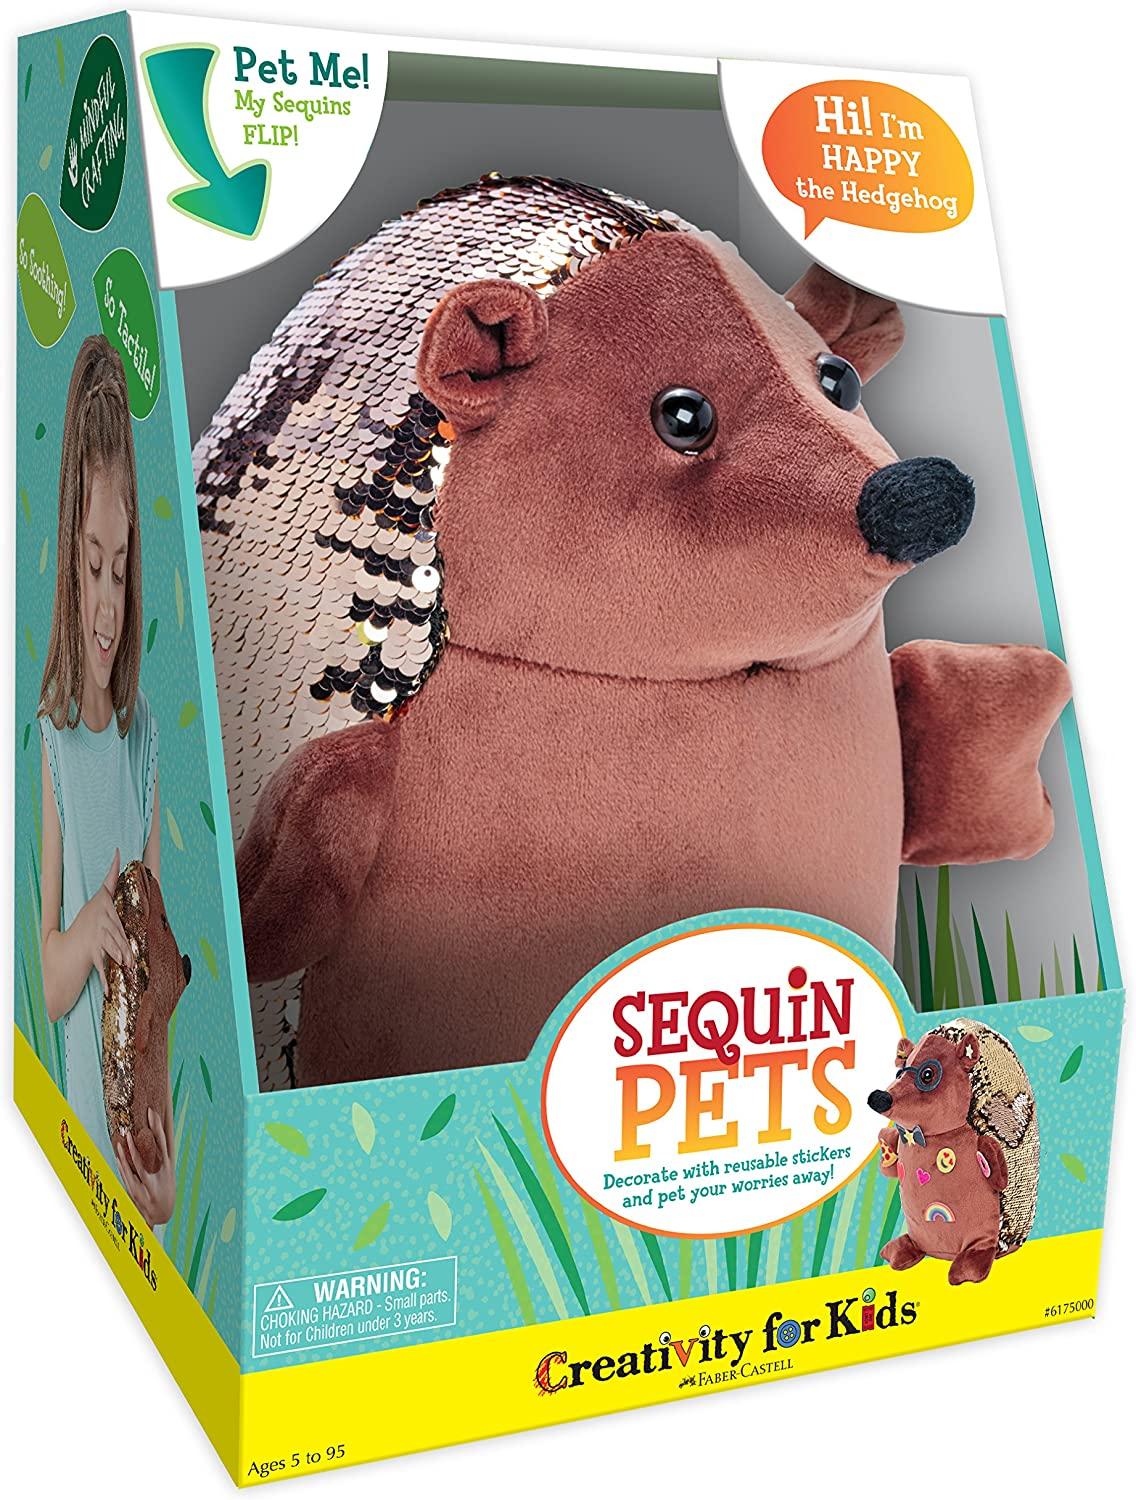 Sequin Pets: Happy the Hedgehog